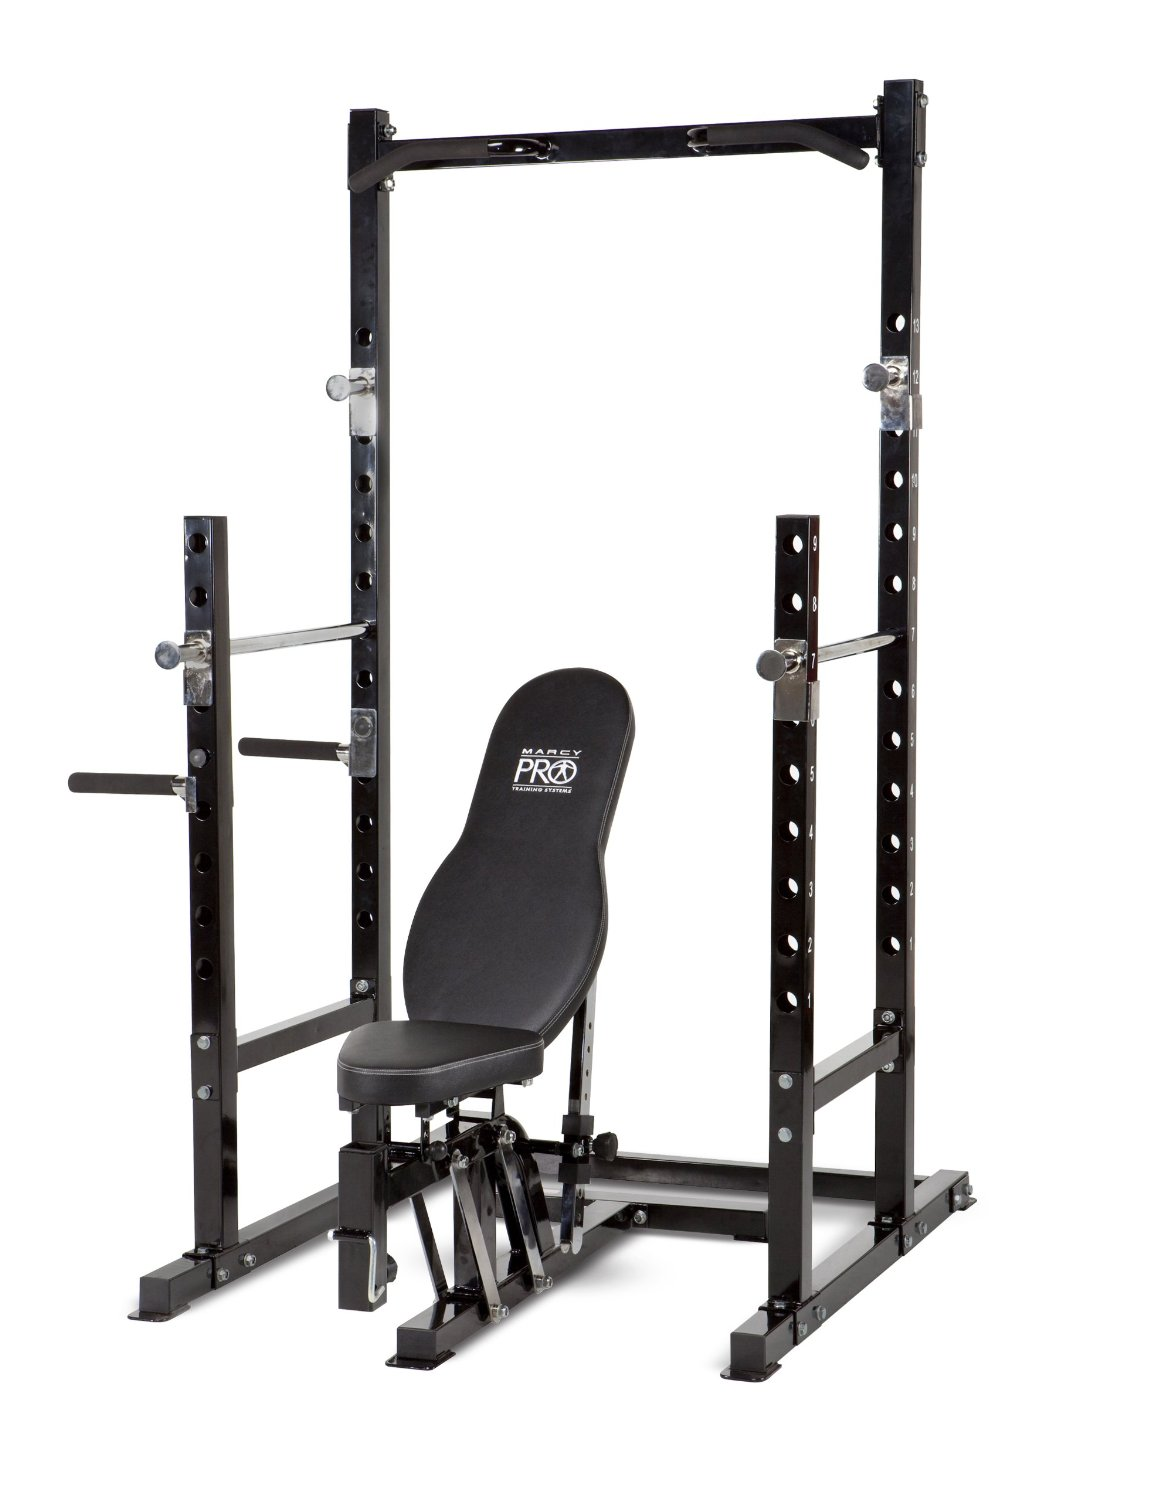 Used Squat Racks for Sale | Bench and Squat Rack Combo with Weights | Squat Rack for Sale